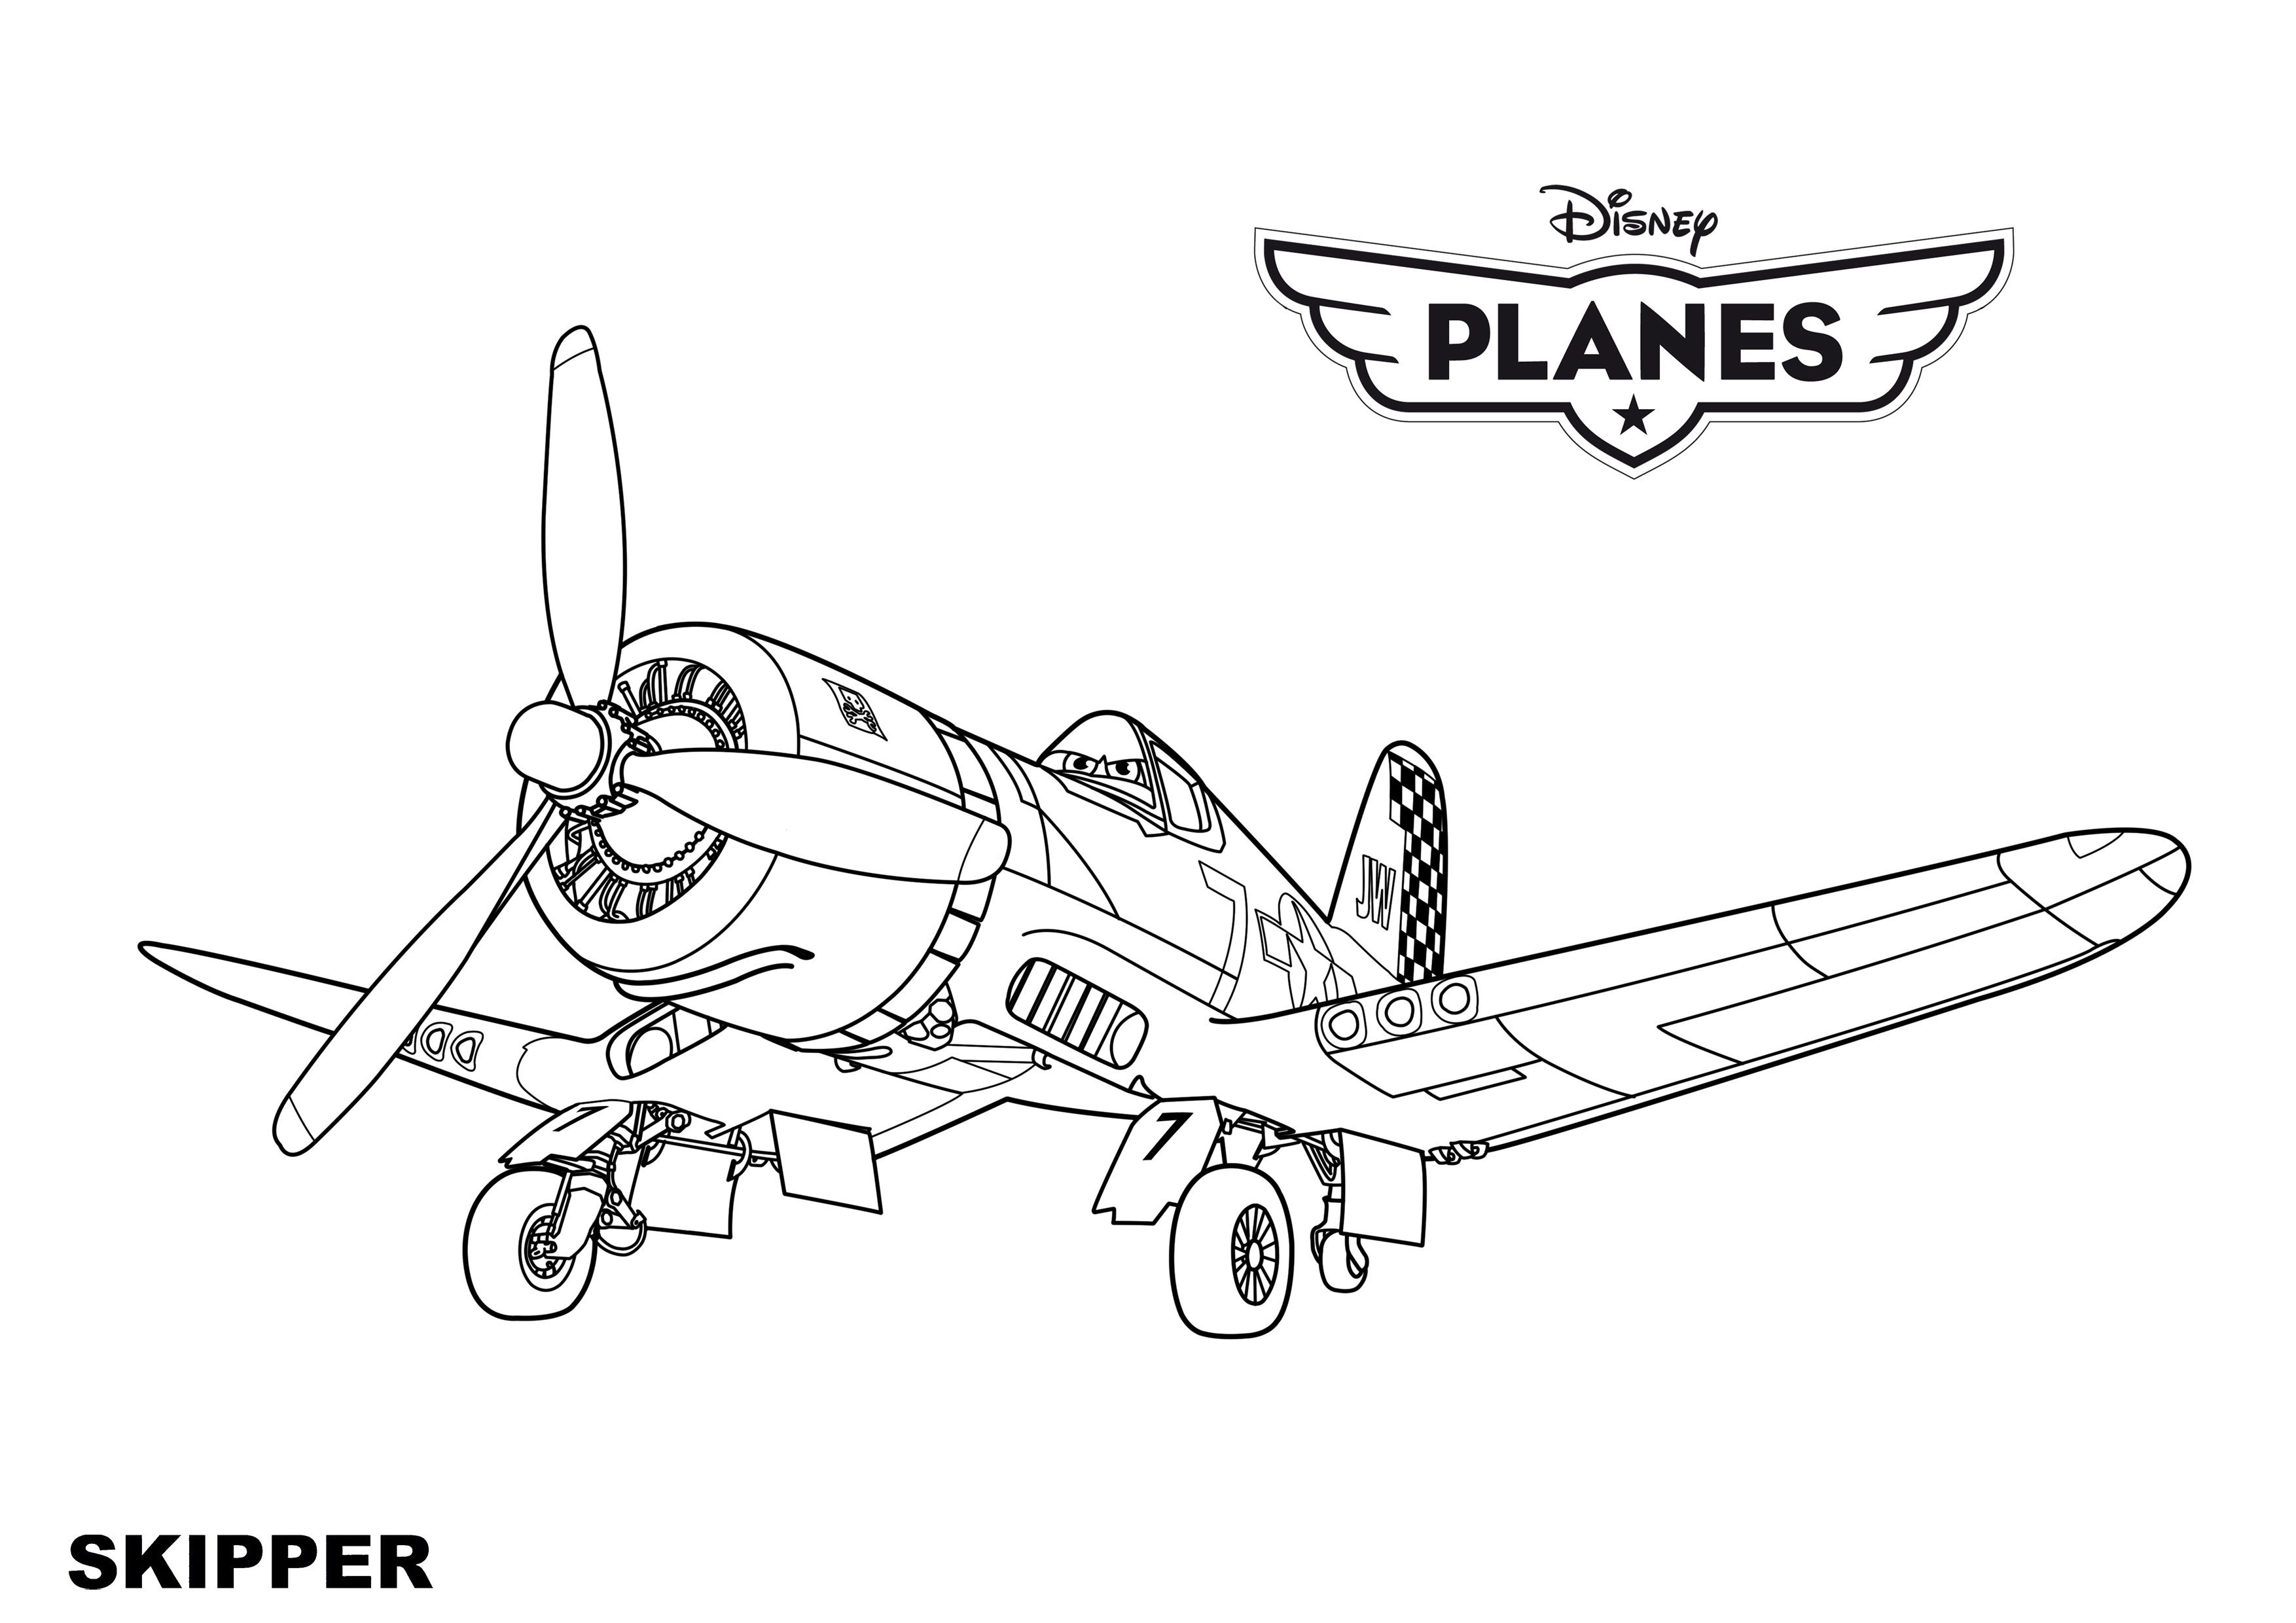 Disney Planes Coloring Pages Skipper